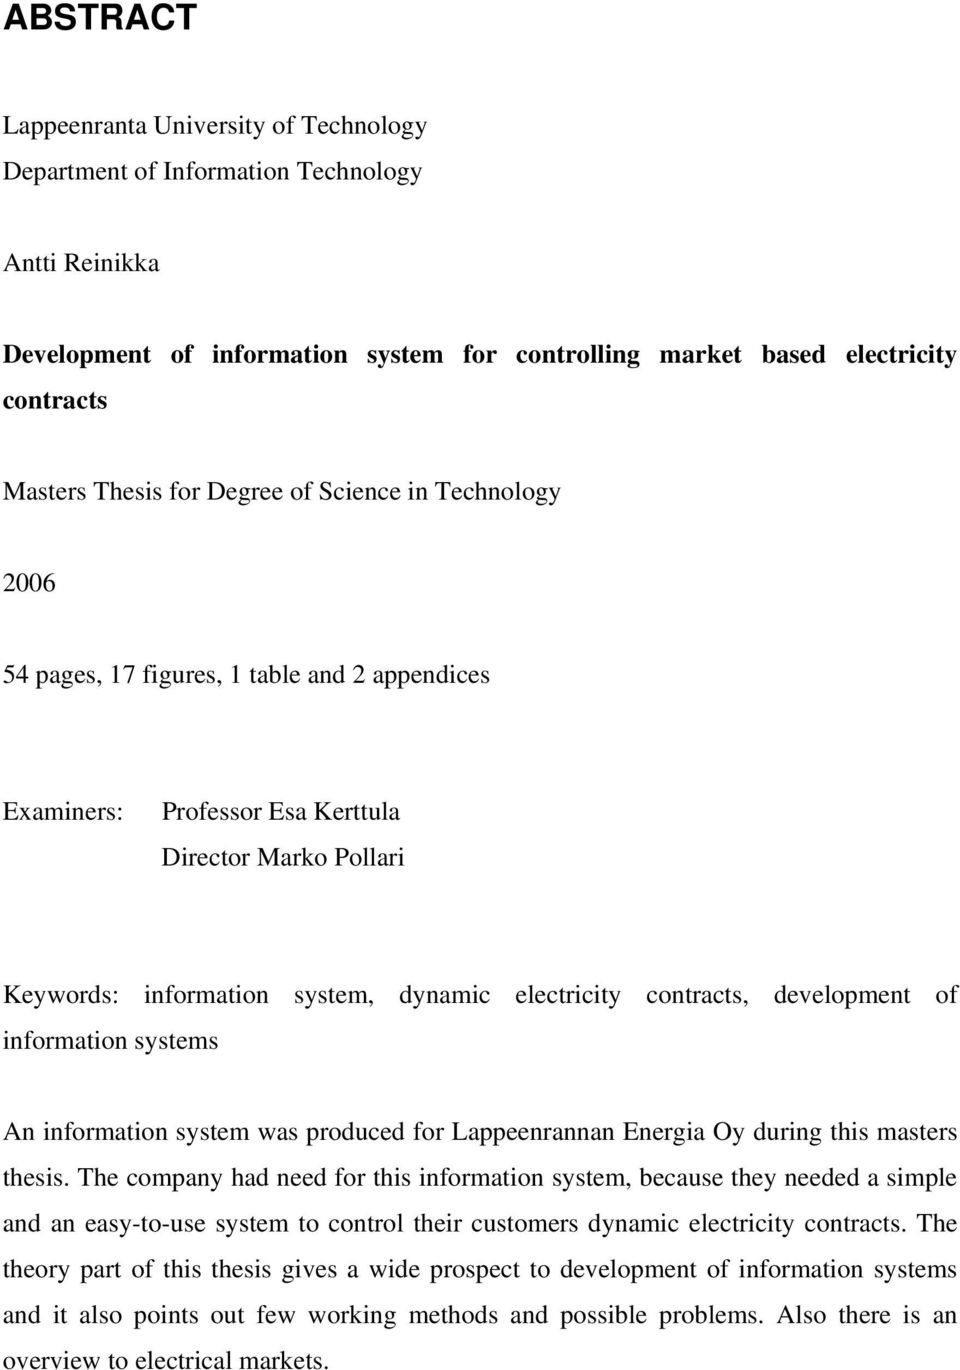 contracts, development of information systems An information system was produced for Lappeenrannan Energia Oy during this masters thesis.